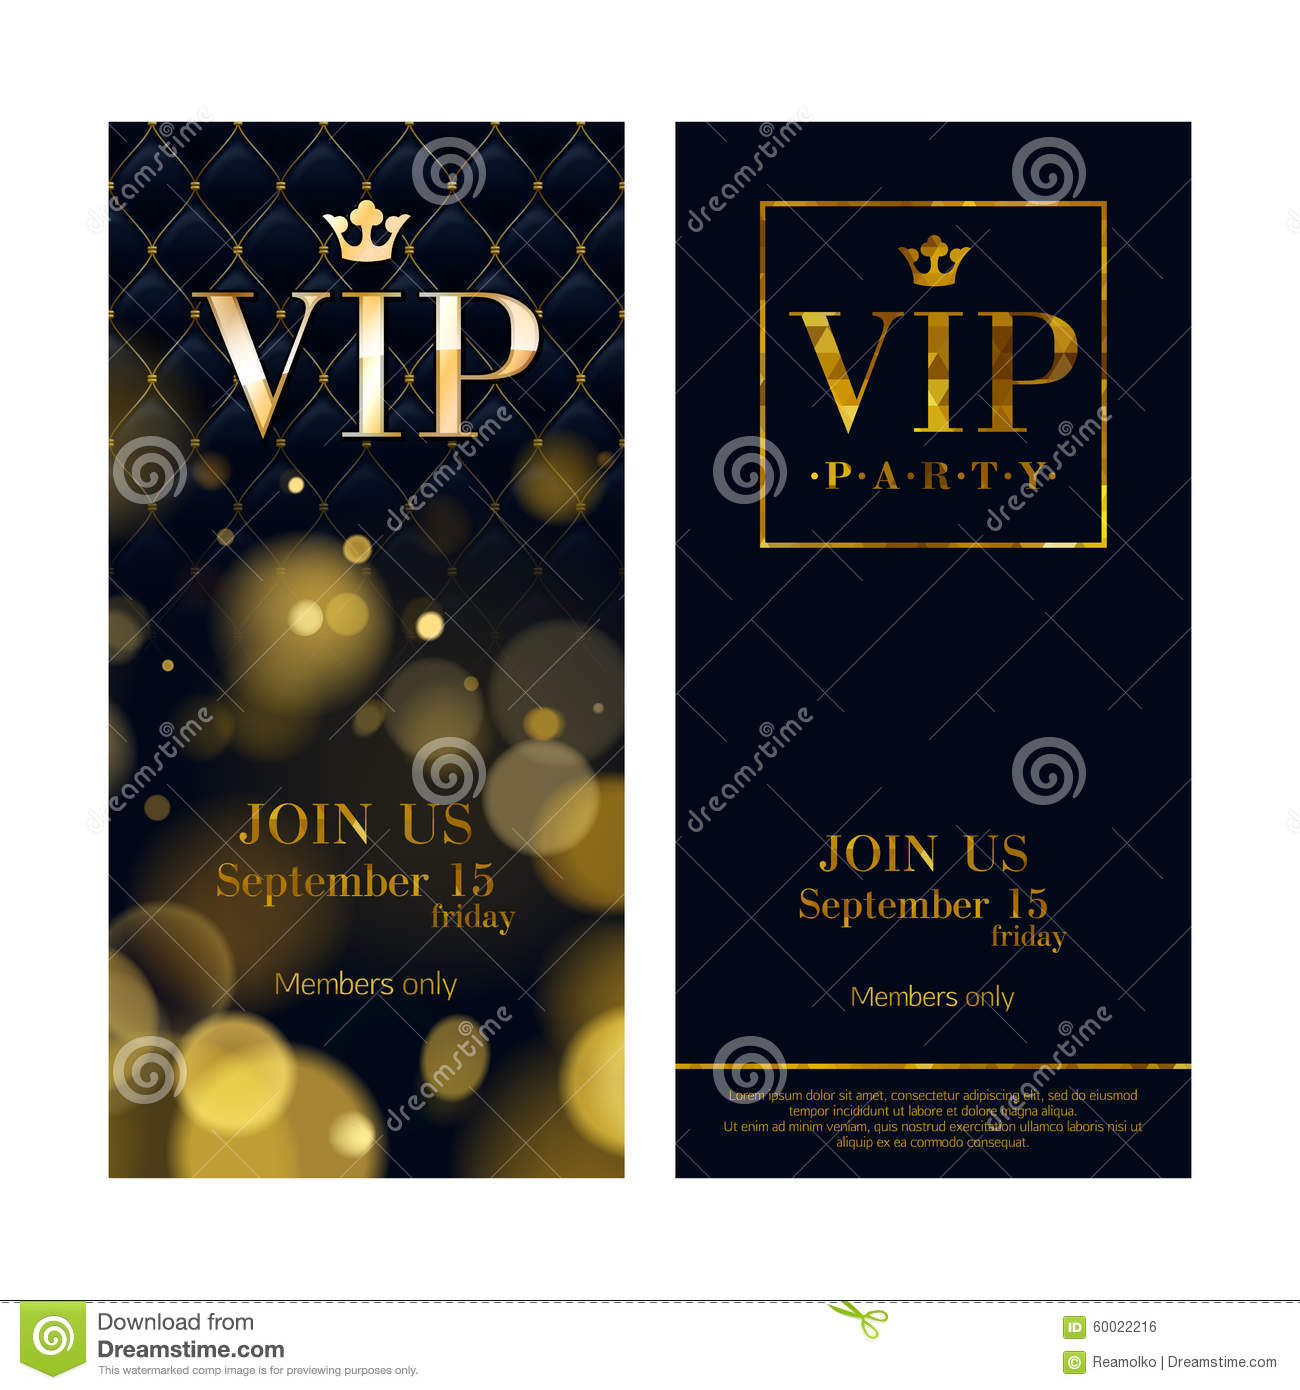 Vip Letter Template on vip button, vip flyer, vip airport welcome sign,